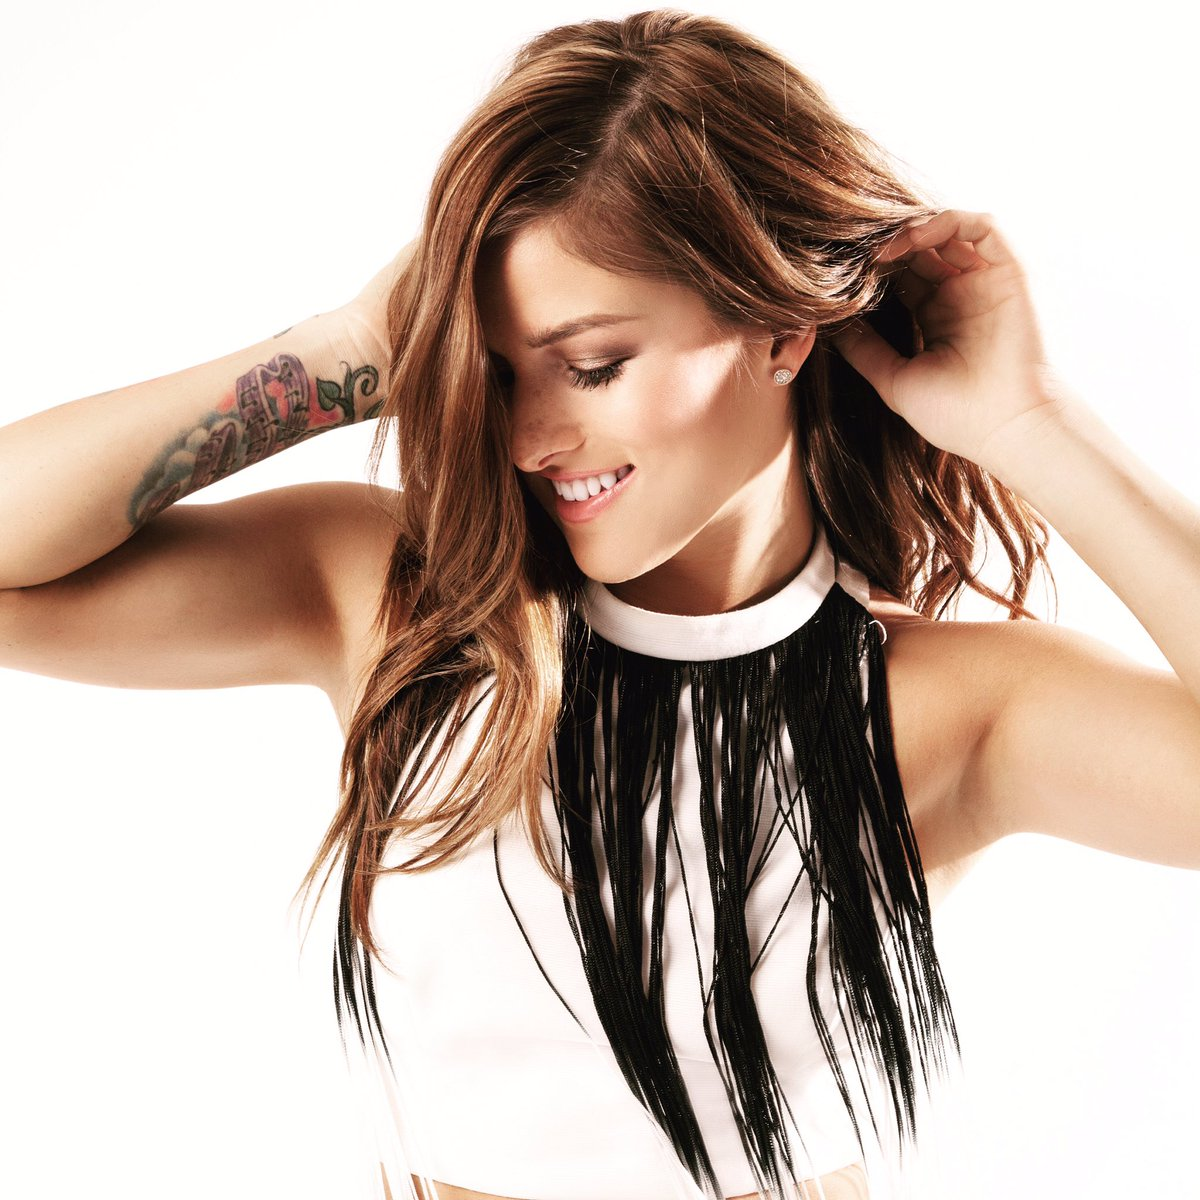 Welcome @cassadeepope to the Go Country 105 family! Right after #GrahamInTheMornings is the #CassadeePopeShow! https://t.co/HJEk5AkxGu